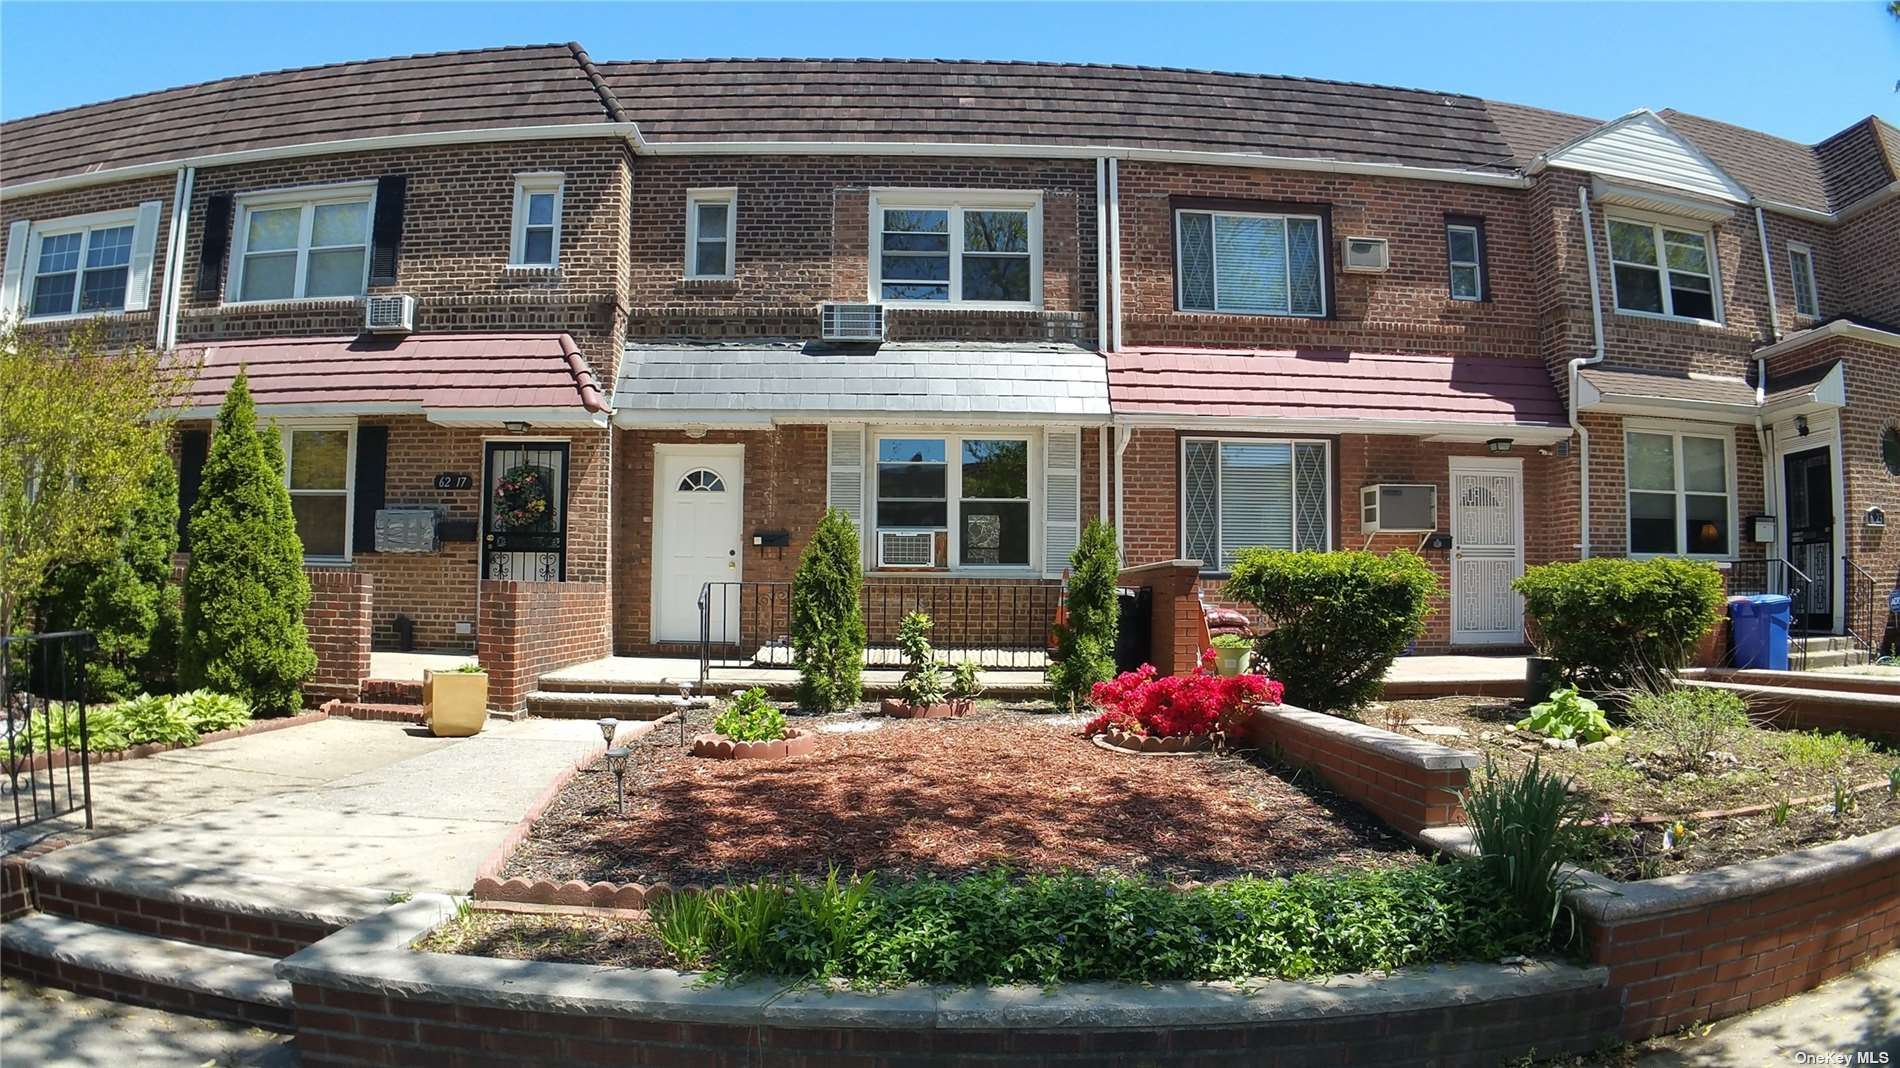 62-19 80th Street, Middle Village, NY 11379 - MLS#: 3310418